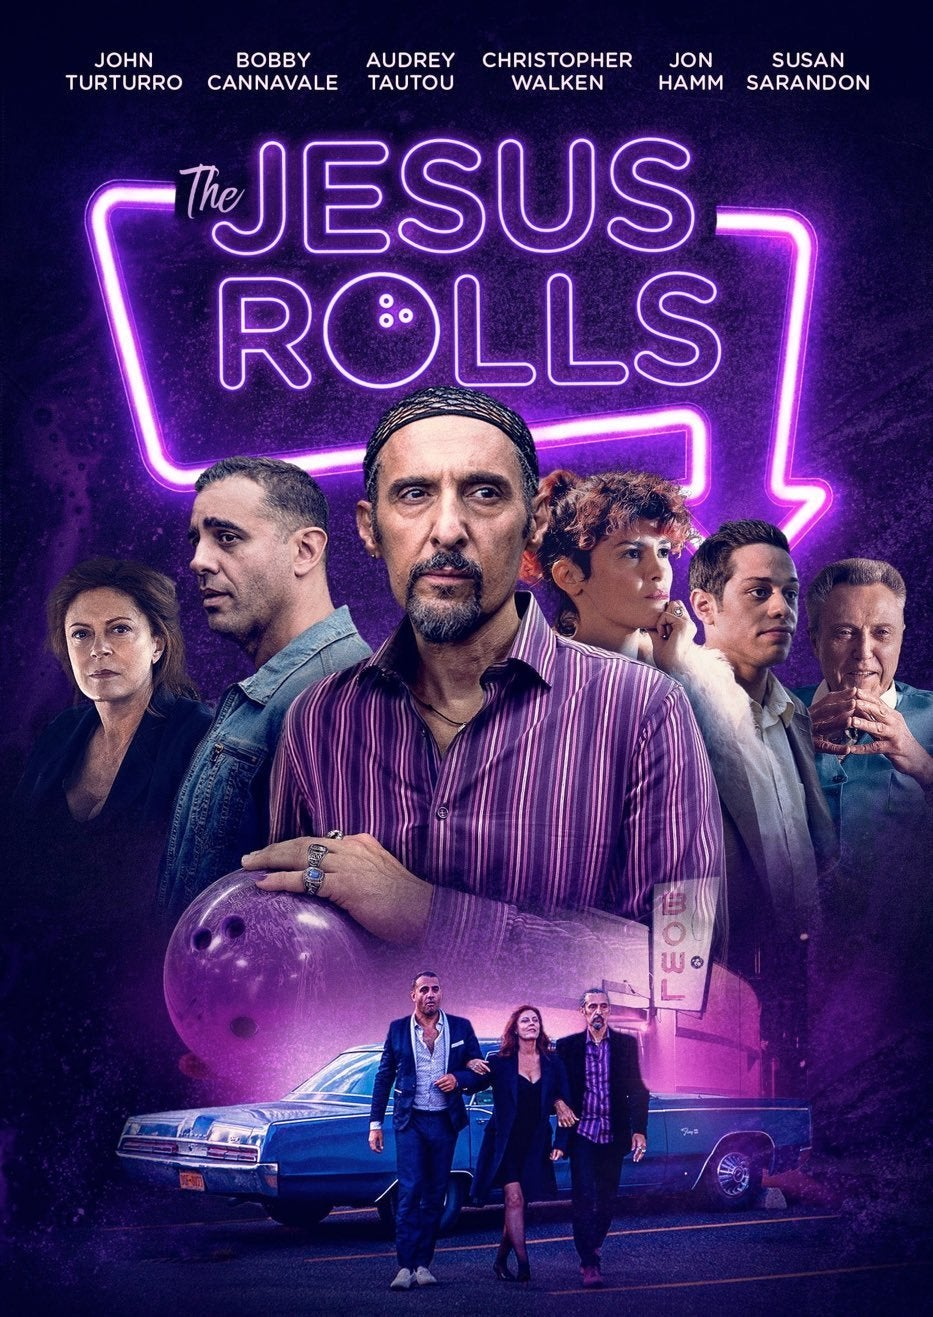 the jesus rolls poster john turturro